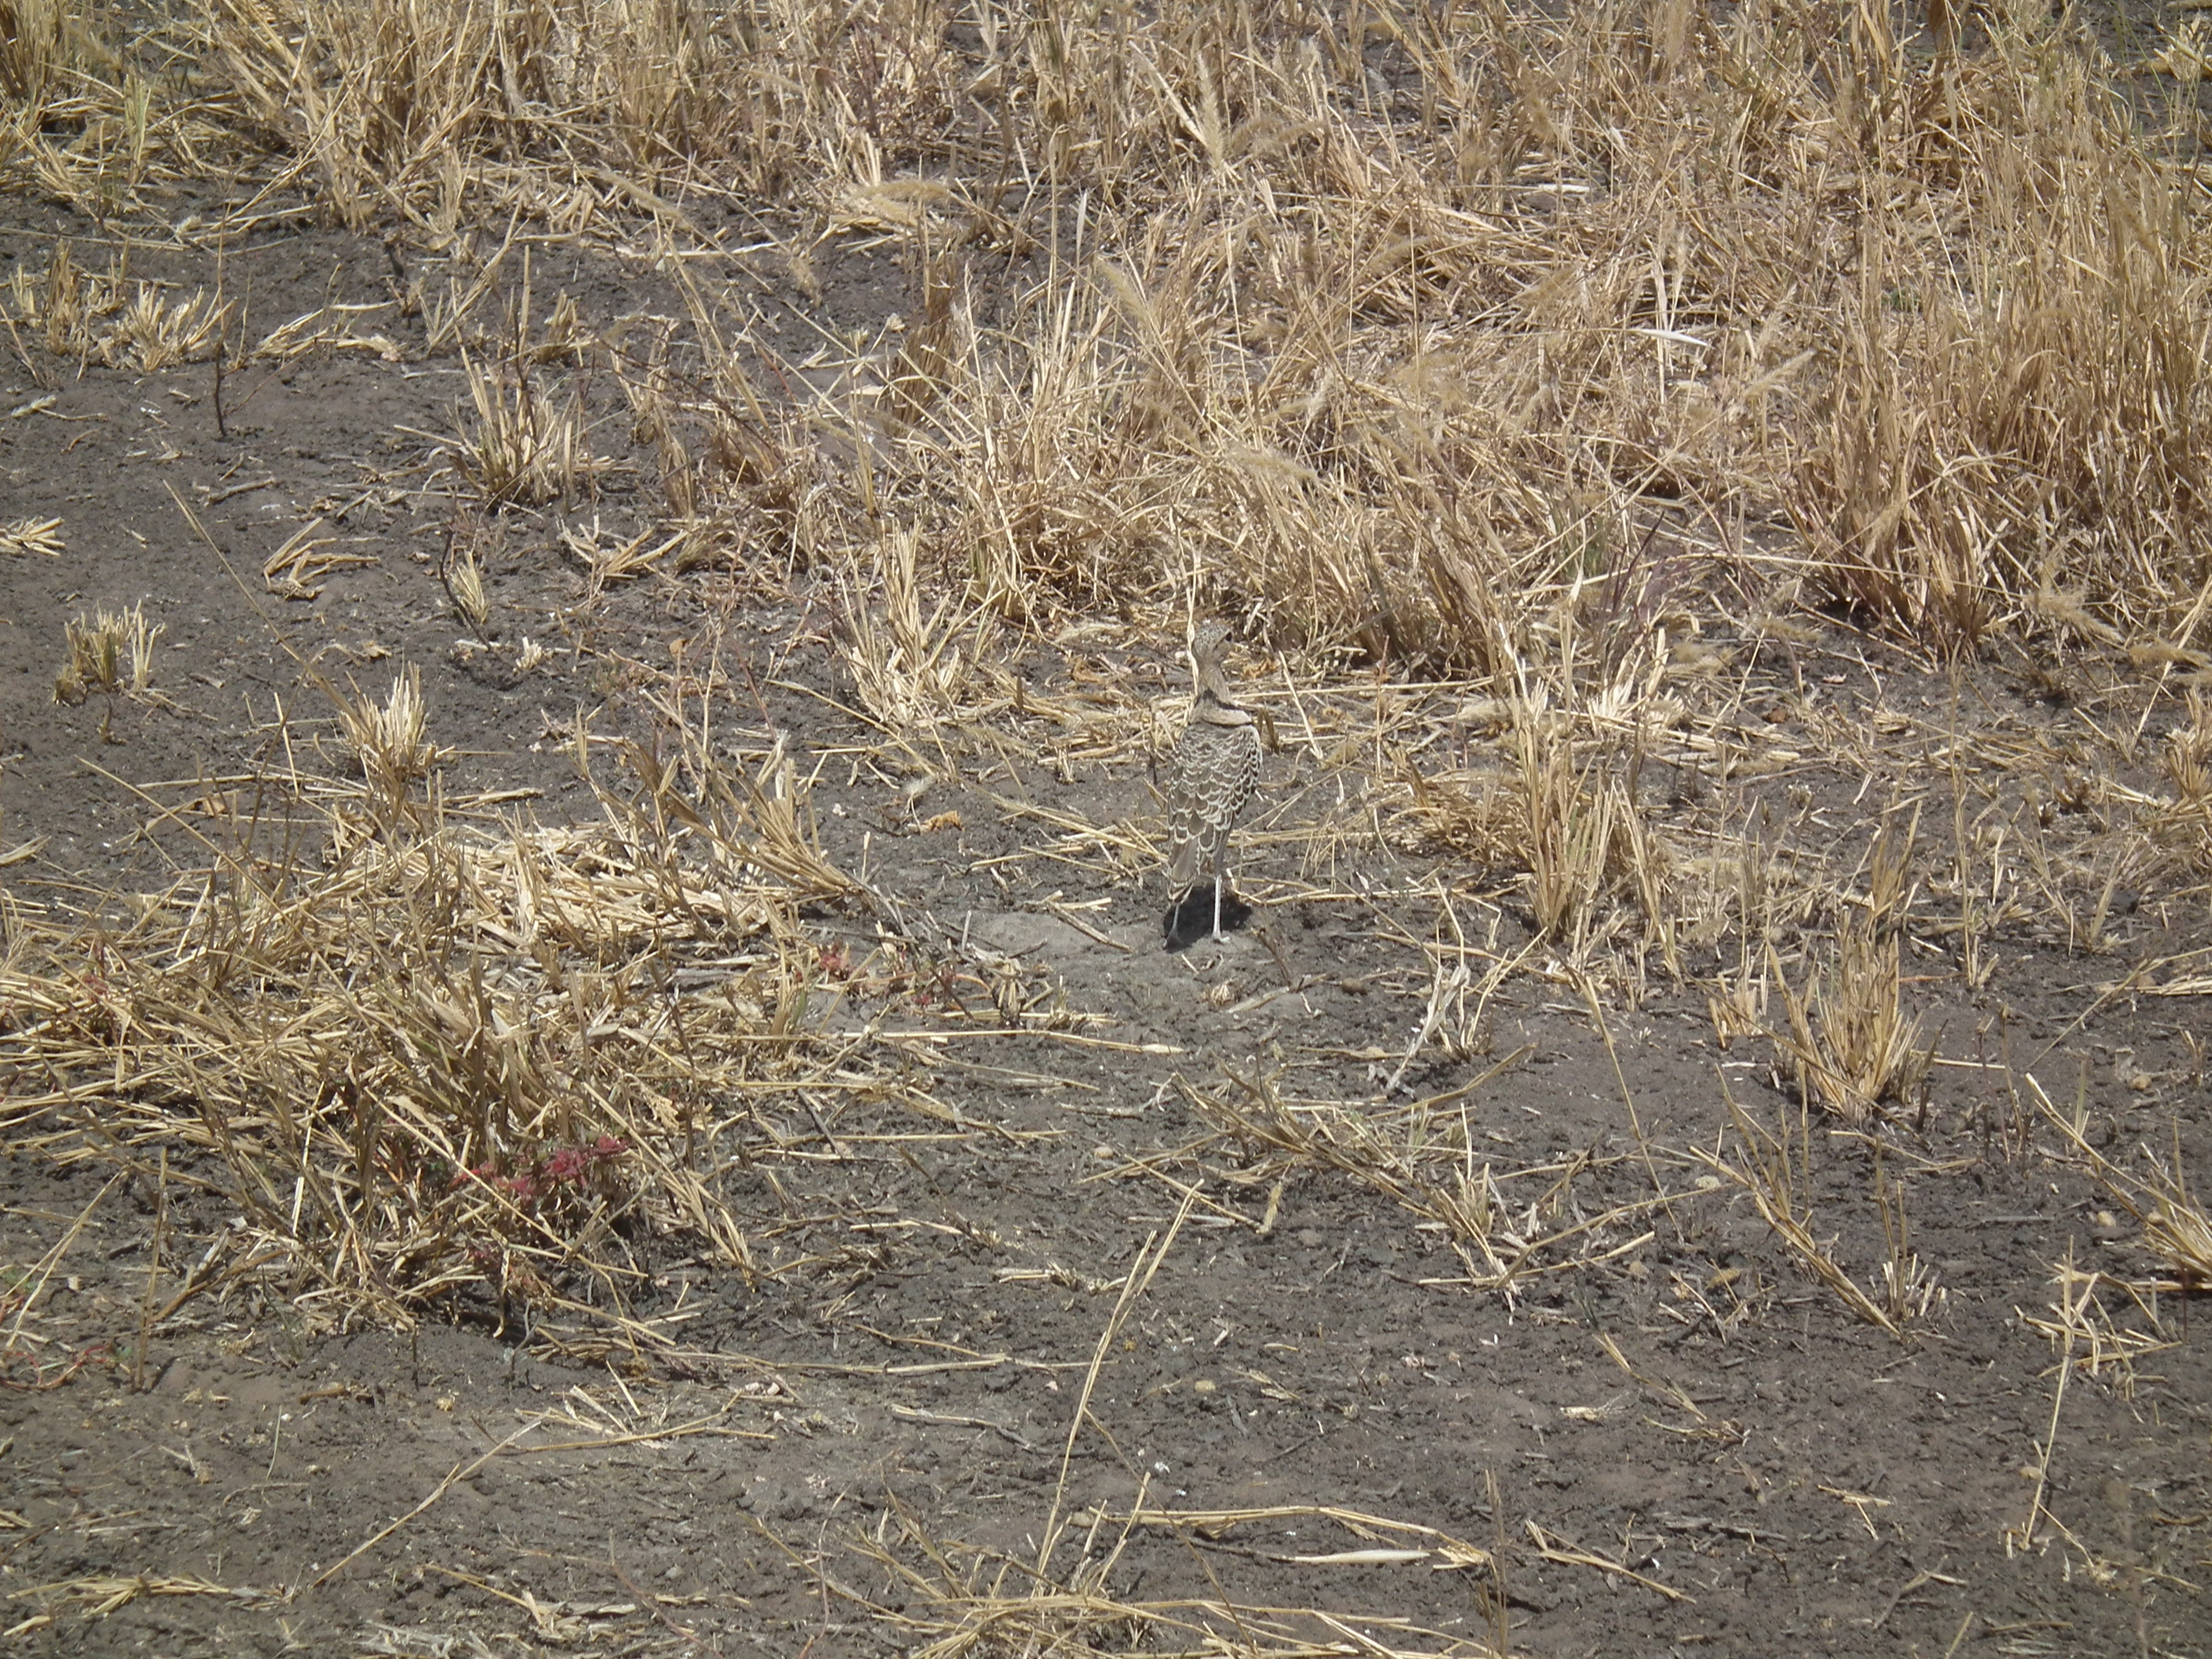 Image of Double-banded Courser